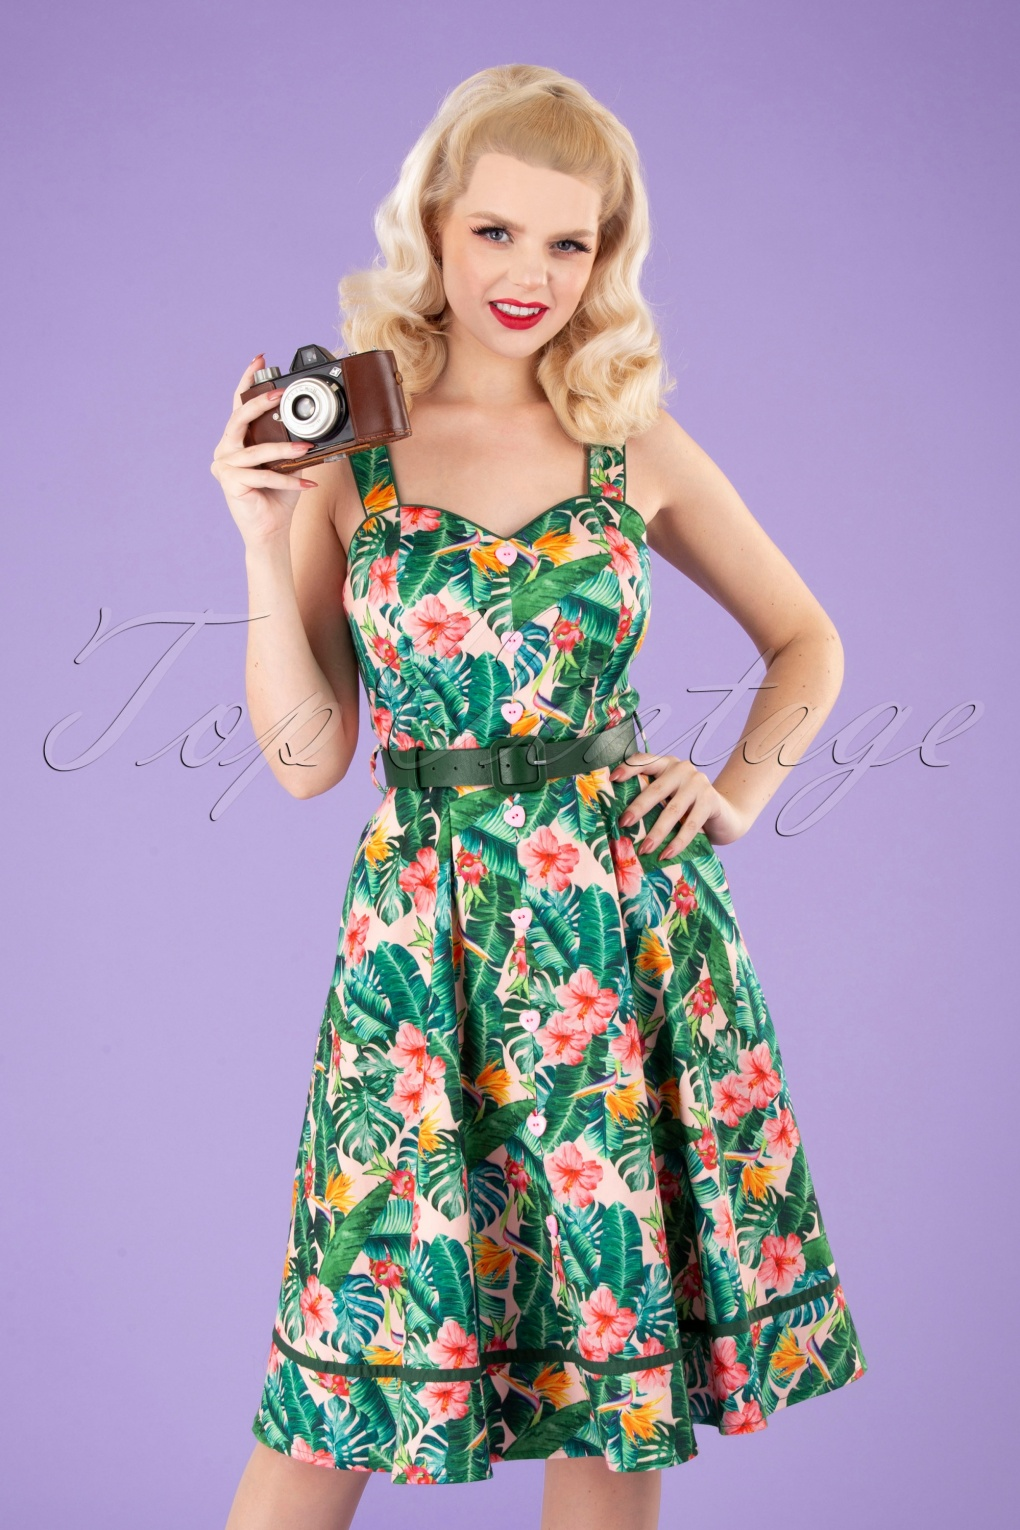 1950s Plus Size Dresses, Swing Dresses Unreal Redheads Collaboration  50s Jinkx Floral Tropical Dress in Pink and Green £67.78 AT vintagedancer.com